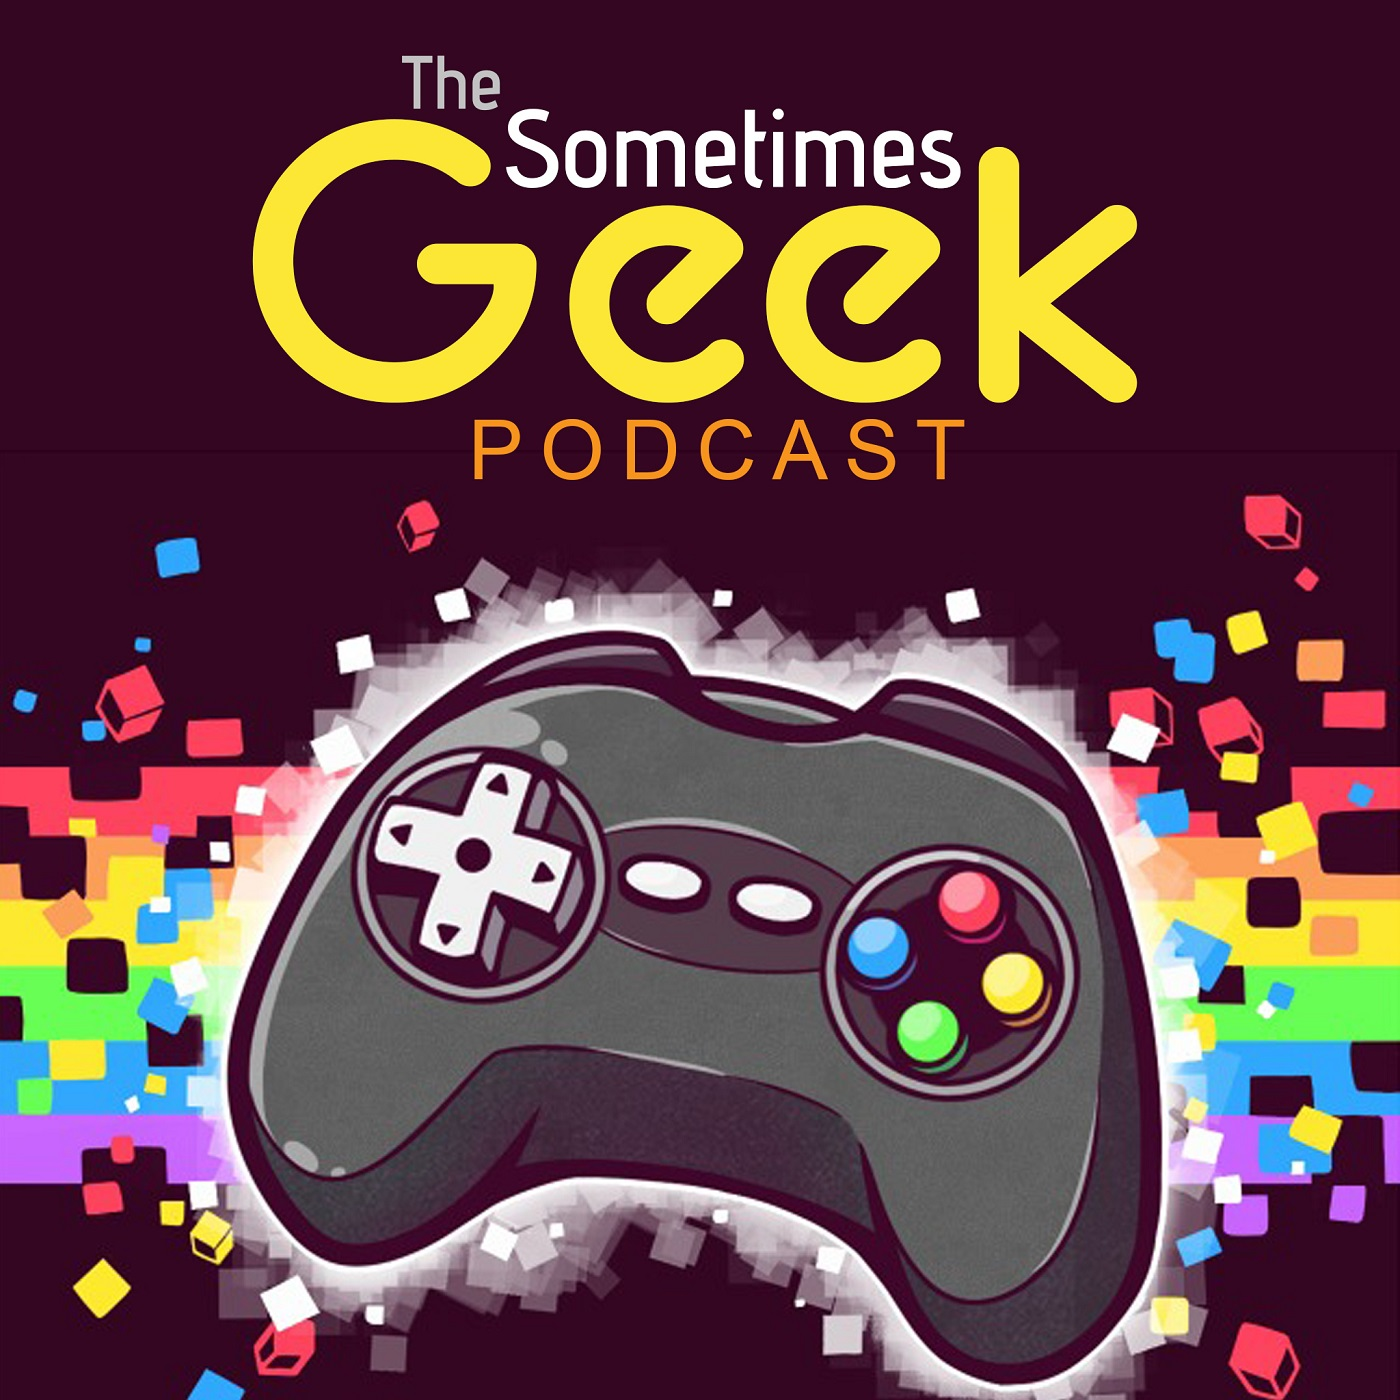 Sometimes Geek Levels Up - 2018 Roundtable